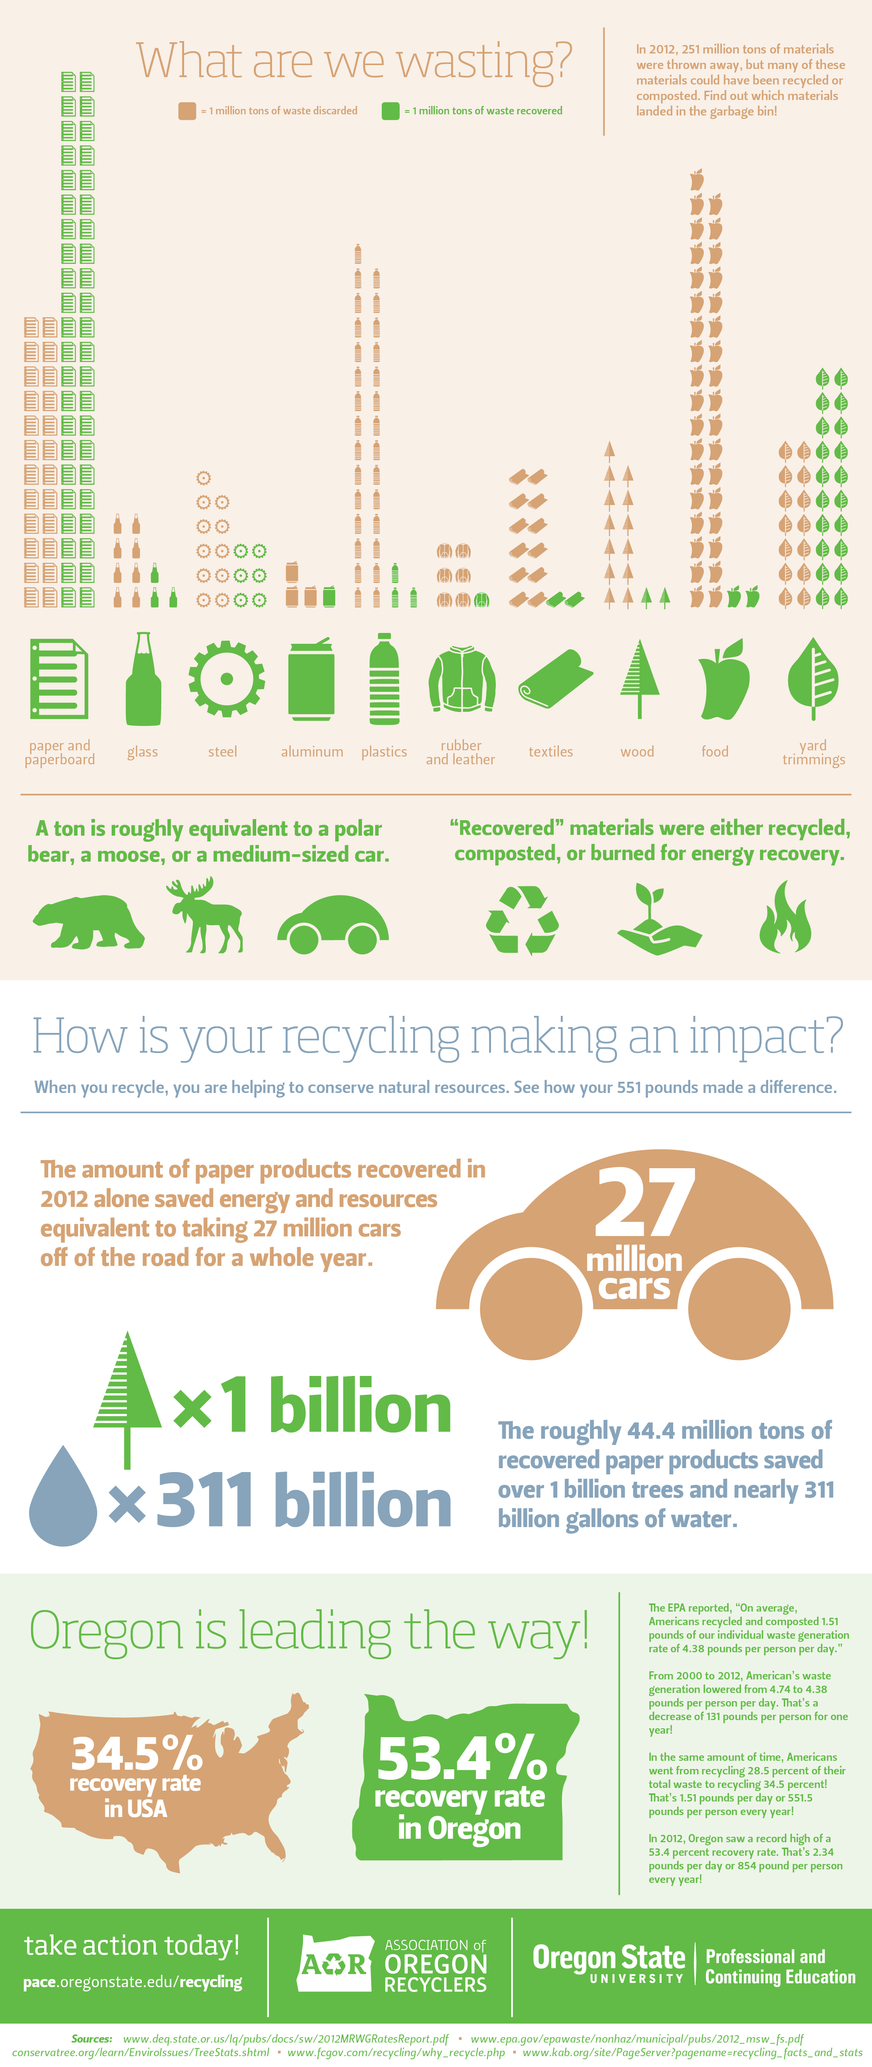 osu-pace-recycling-infographic-872x2067